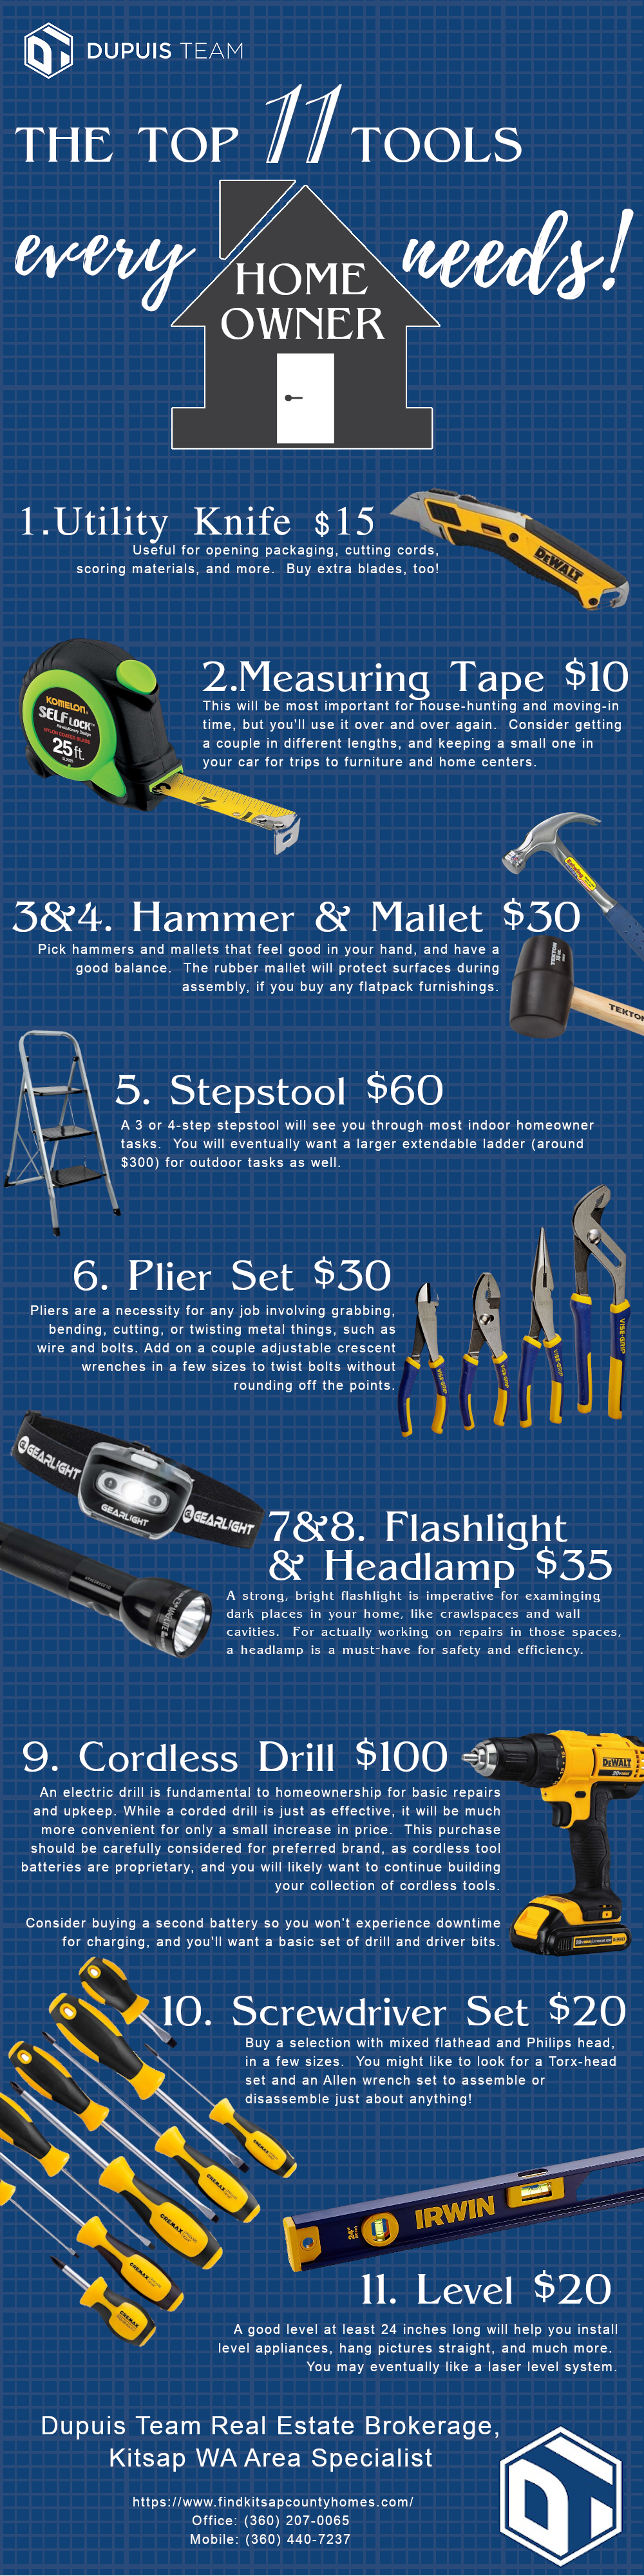 Dupuis Team Infographic: 11 Essential Tools for the New Homeowner